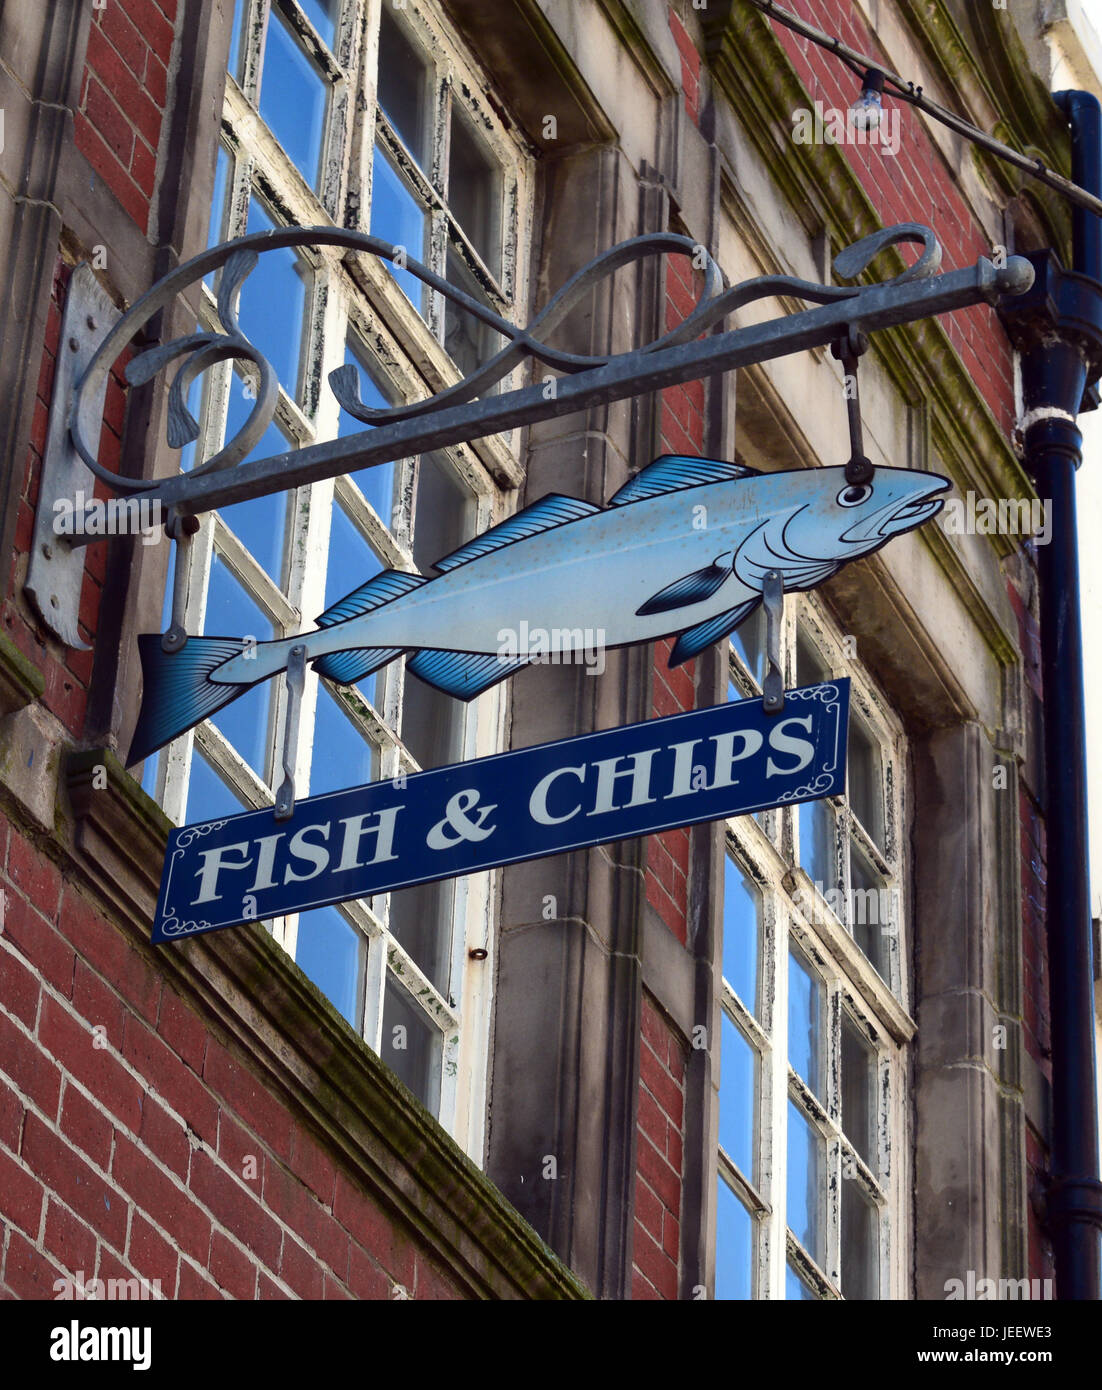 FISH AND CHIPS BRITANNIQUE PICTURAL S _WHITBY, Yorkshire Photo Stock